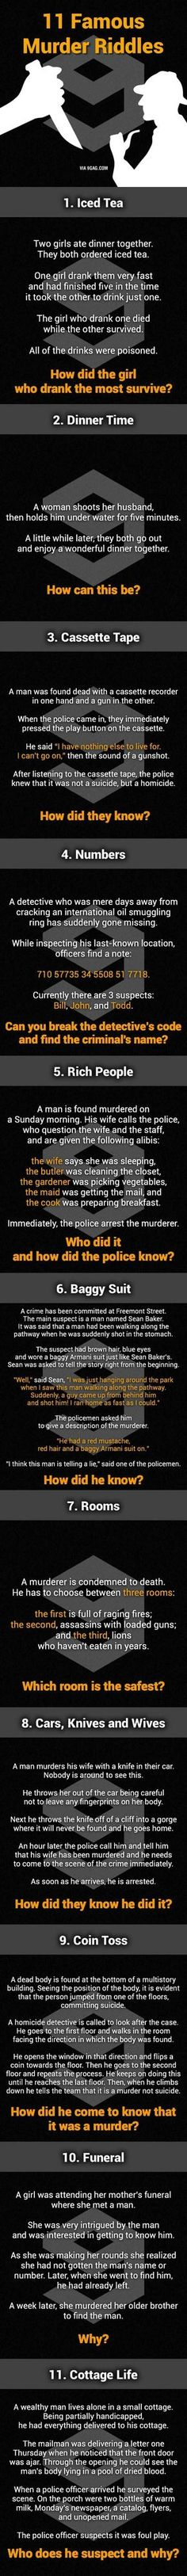 Here's some good murder riddles - 9GAG